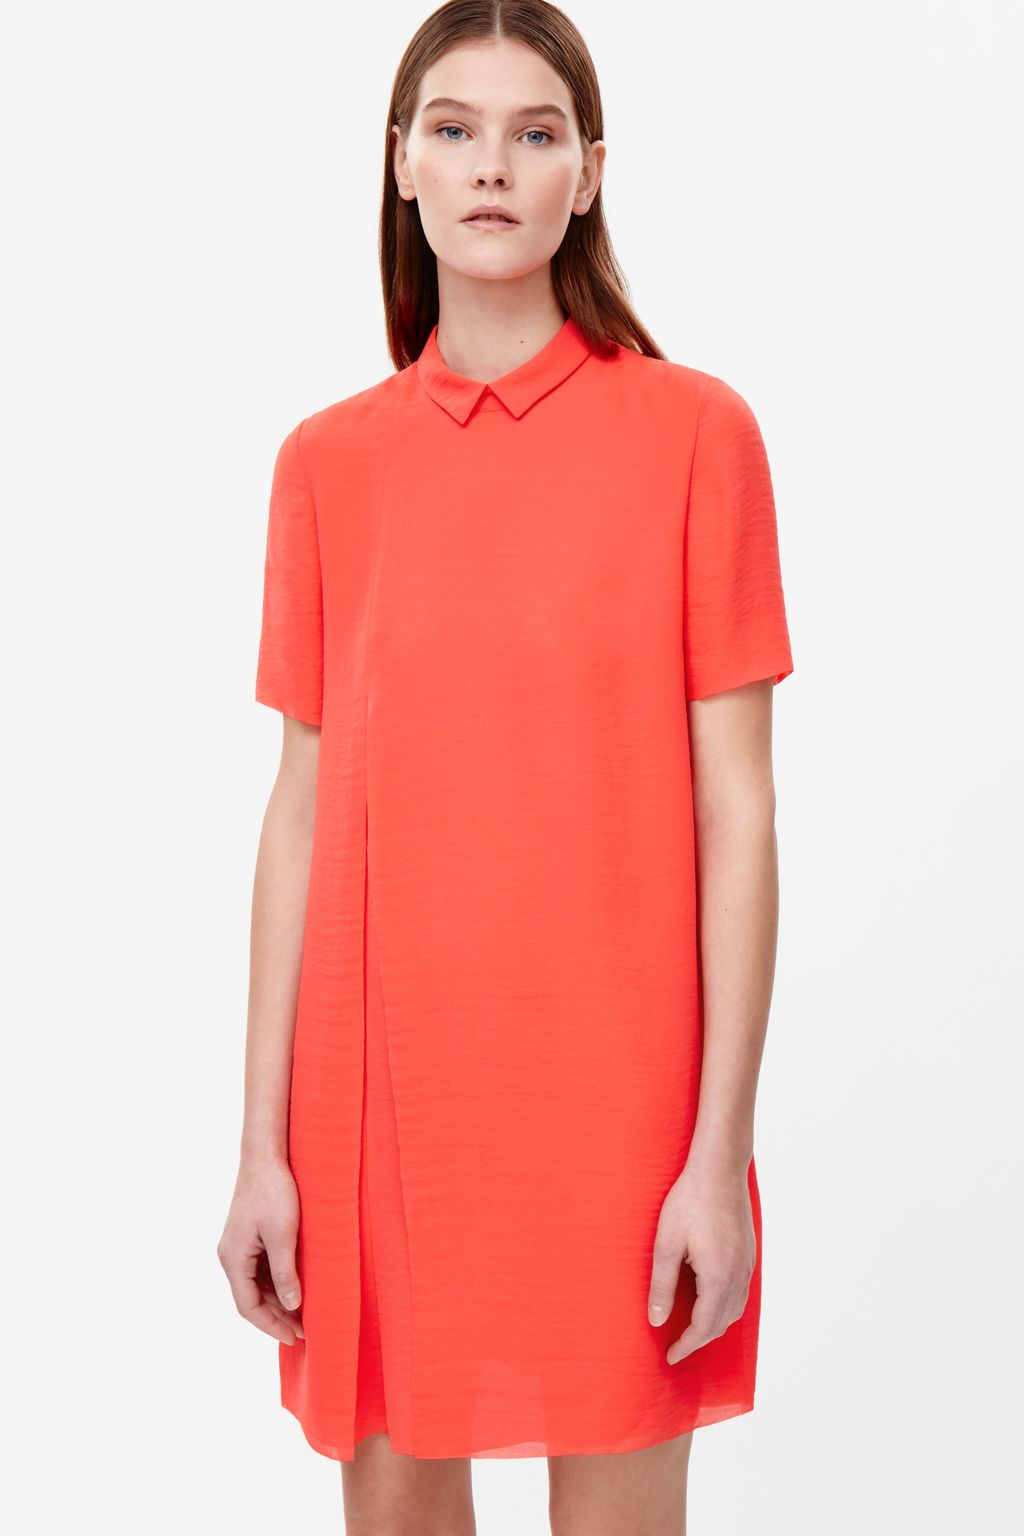 Pleated Raw Cut Dress - style: shift; neckline: shirt collar/peter pan/zip with opening; pattern: plain; predominant colour: coral; occasions: casual, creative work; length: just above the knee; fit: body skimming; fibres: polyester/polyamide - 100%; sleeve length: short sleeve; sleeve style: standard; pattern type: fabric; texture group: other - light to midweight; season: s/s 2016; wardrobe: highlight